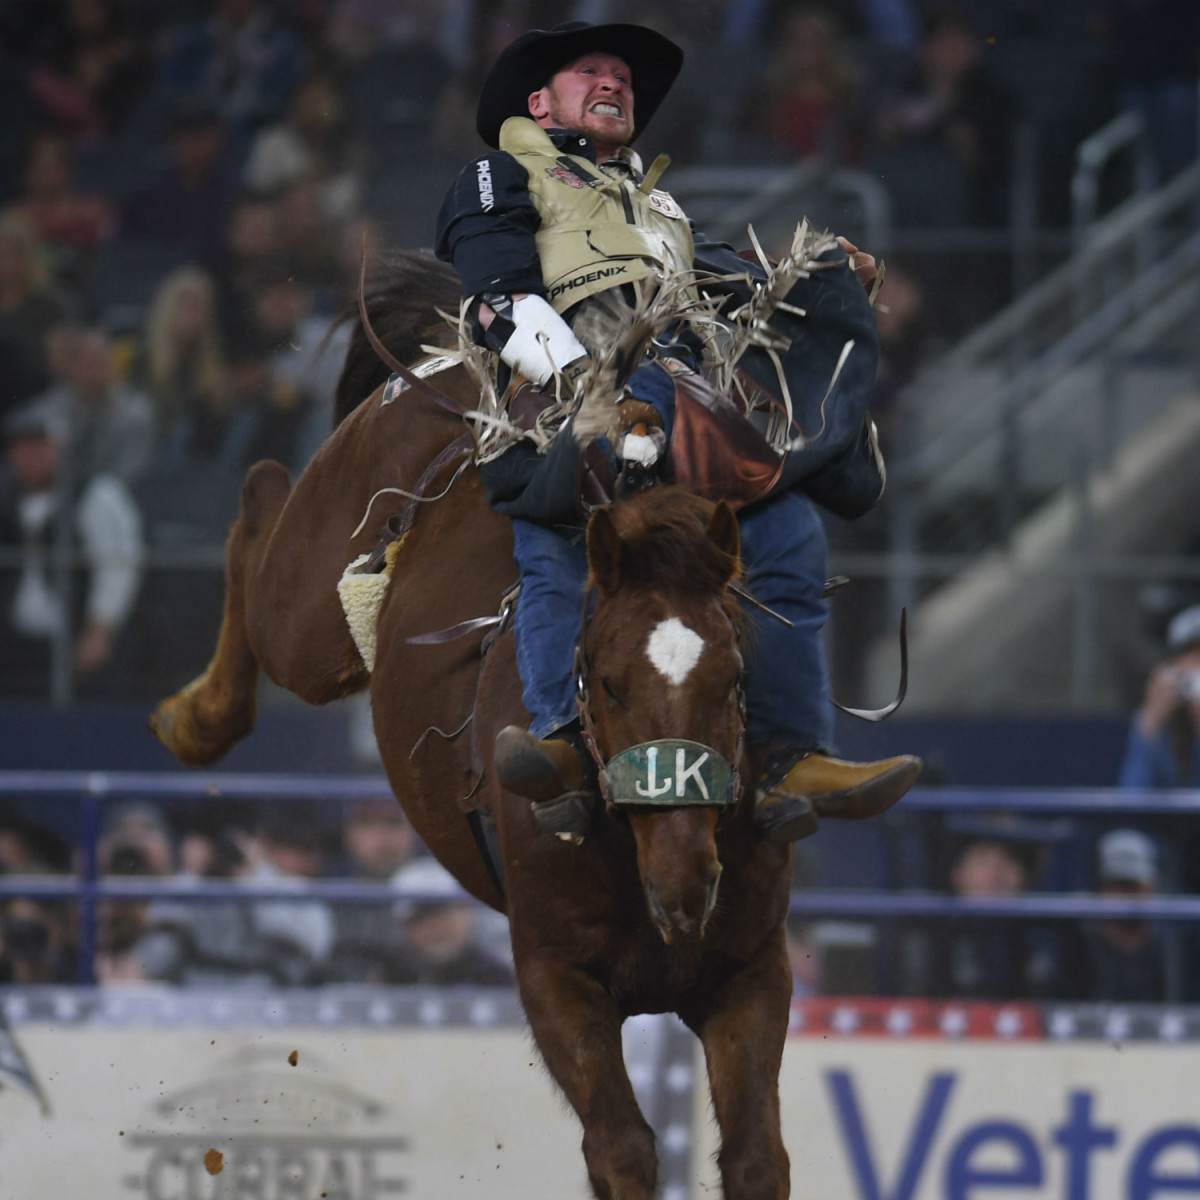 RFD-TV The American Rodeo